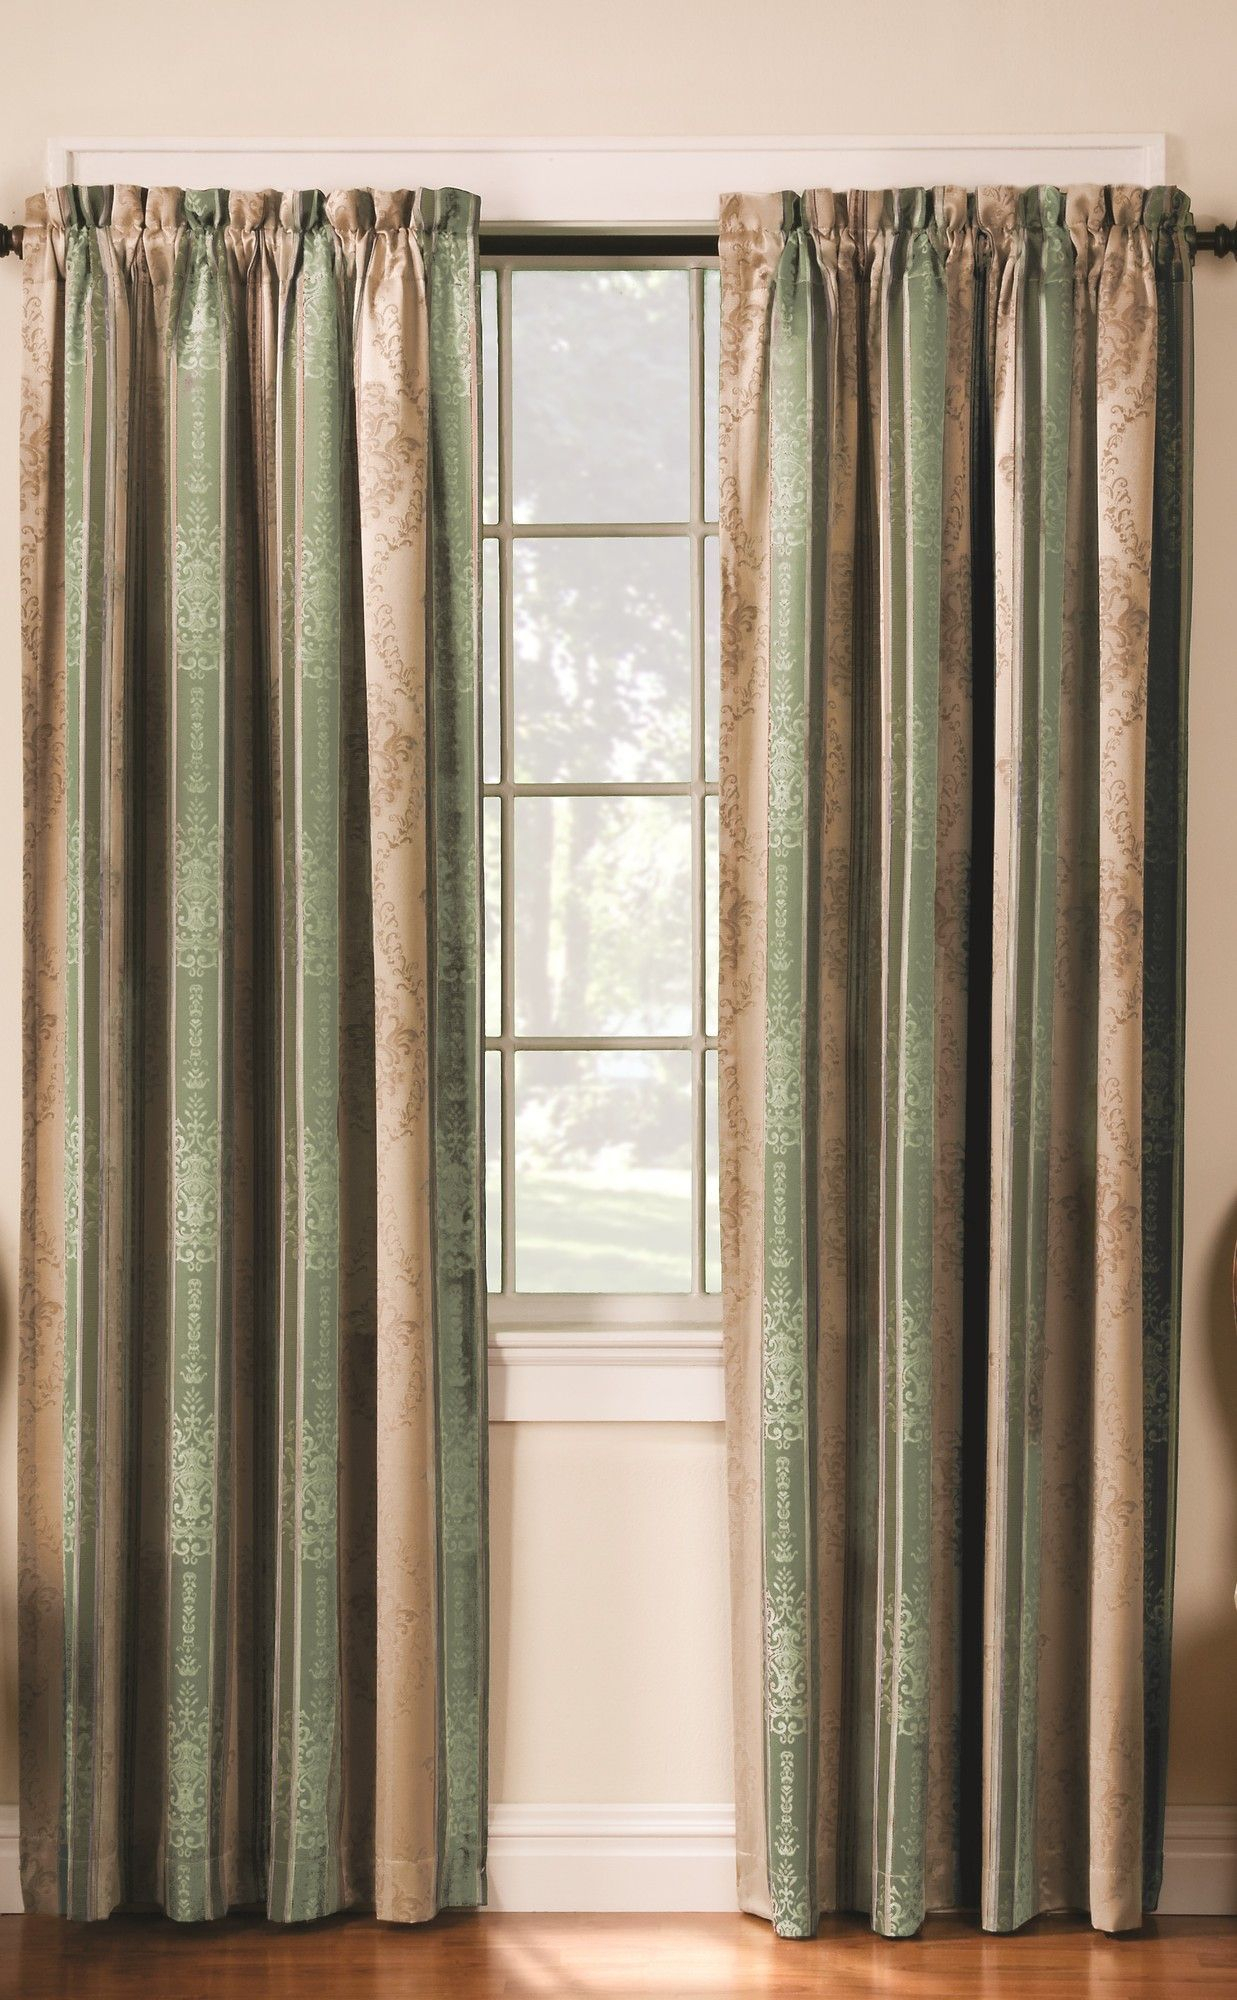 Tuscan Curtain Panel | Products | Tuscan Curtains, Drapes With Regard To Tuscan Thermal Backed Blackout Curtain Panel Pairs (View 3 of 30)